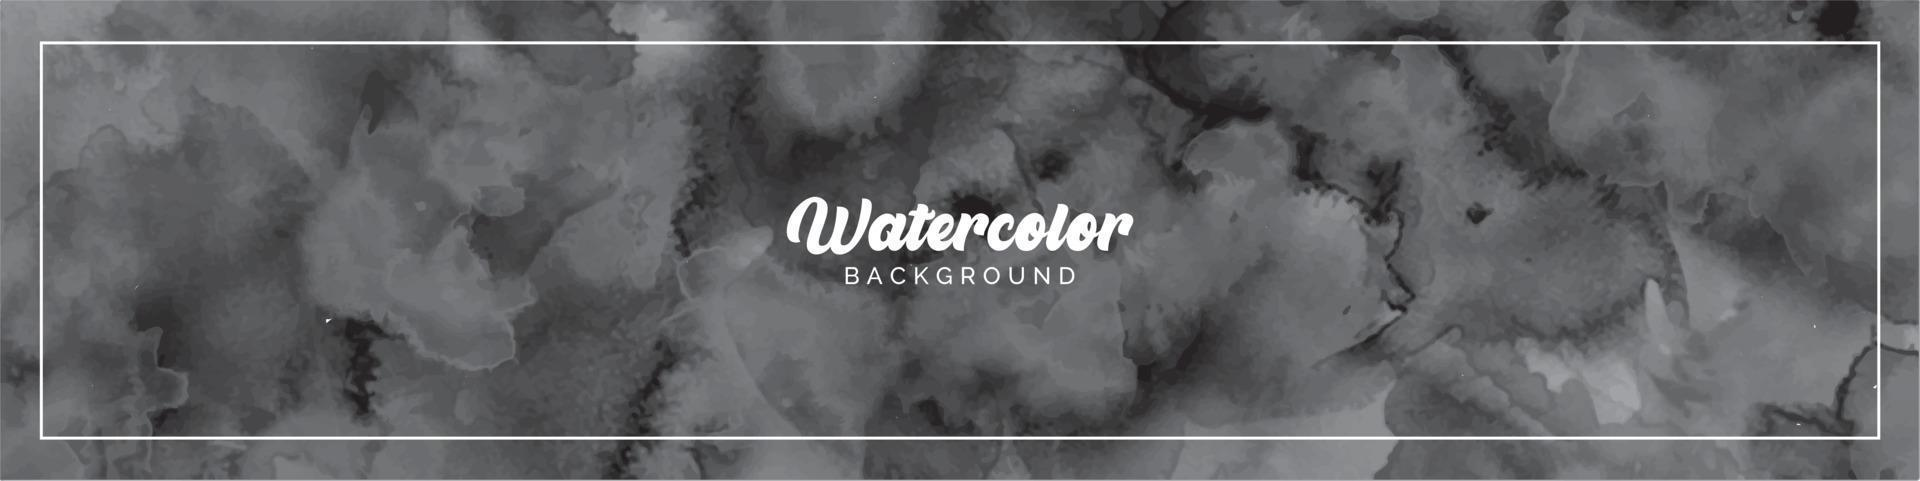 Pastel Light Black Watercolor Painted Background vector